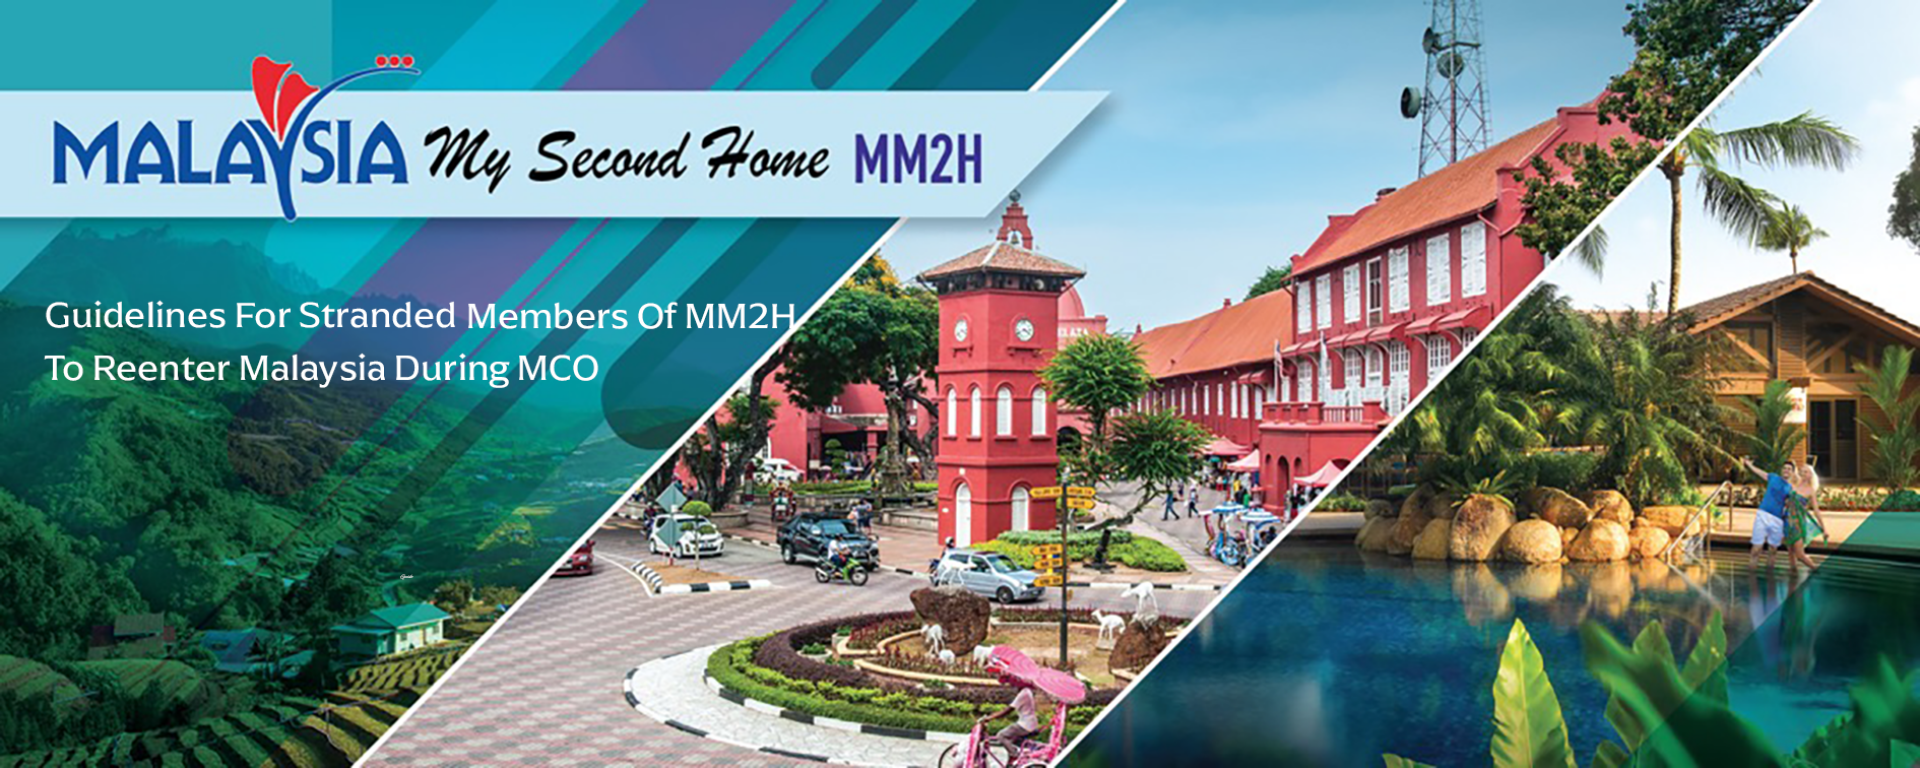 <div class='slider-left'><span class='caption'></span><div class='action '><a href='https://www.tourism.gov.my/files/uploads/Guidelines_For_Stranded_Members_Of_(MM2H)_To_Reenter_Malaysia_During_(MCO).pdf' class='btn btn-danger btn-lg' target=''>Read More</a></div></div>